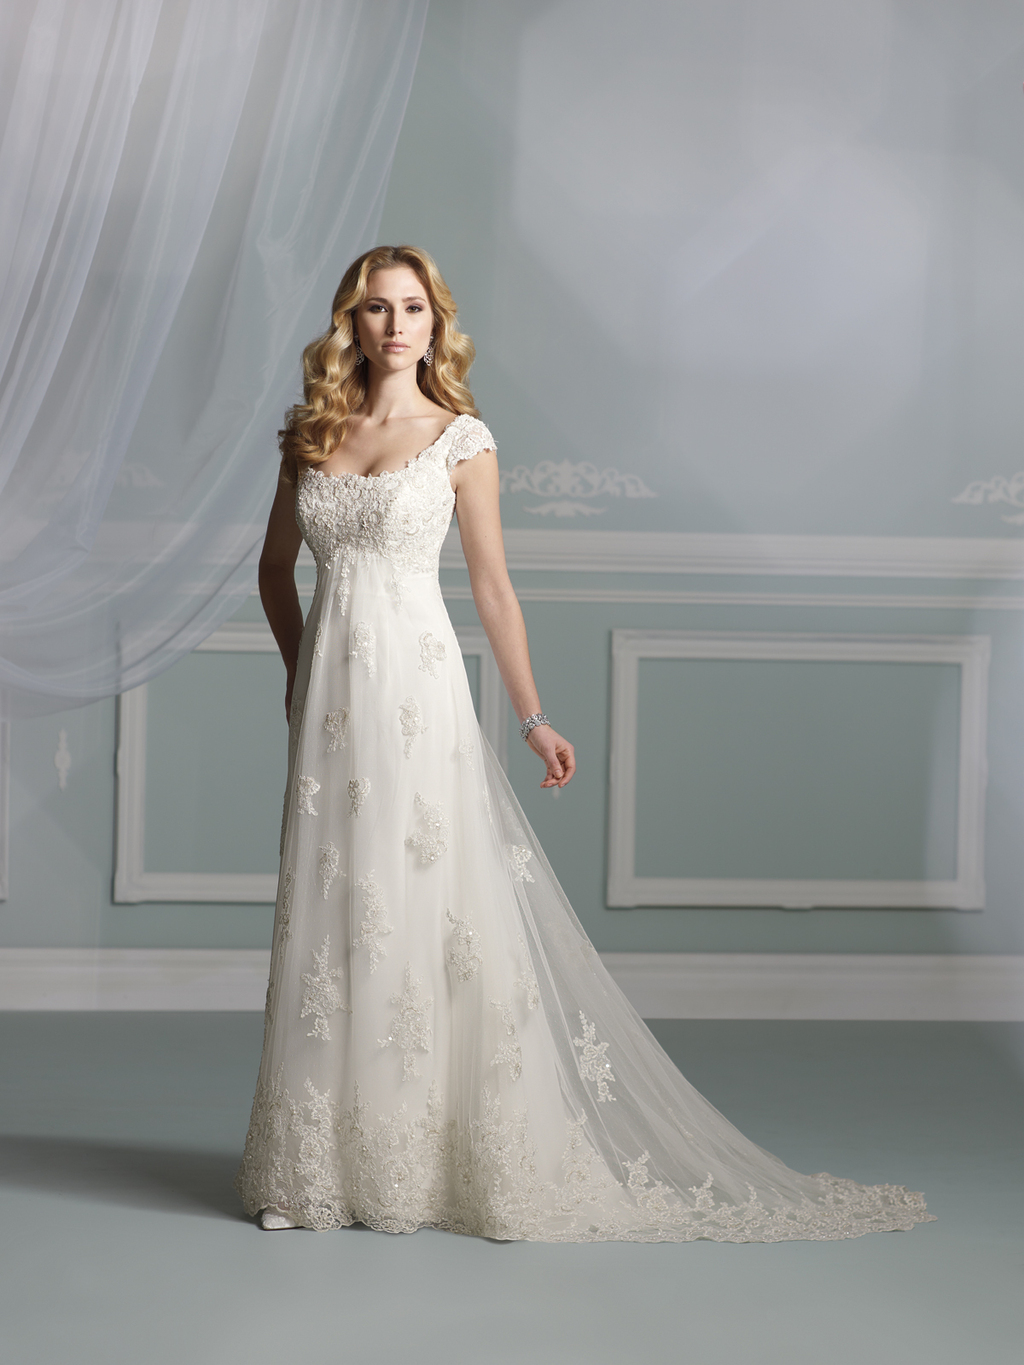 James clifford collection wedding dresses